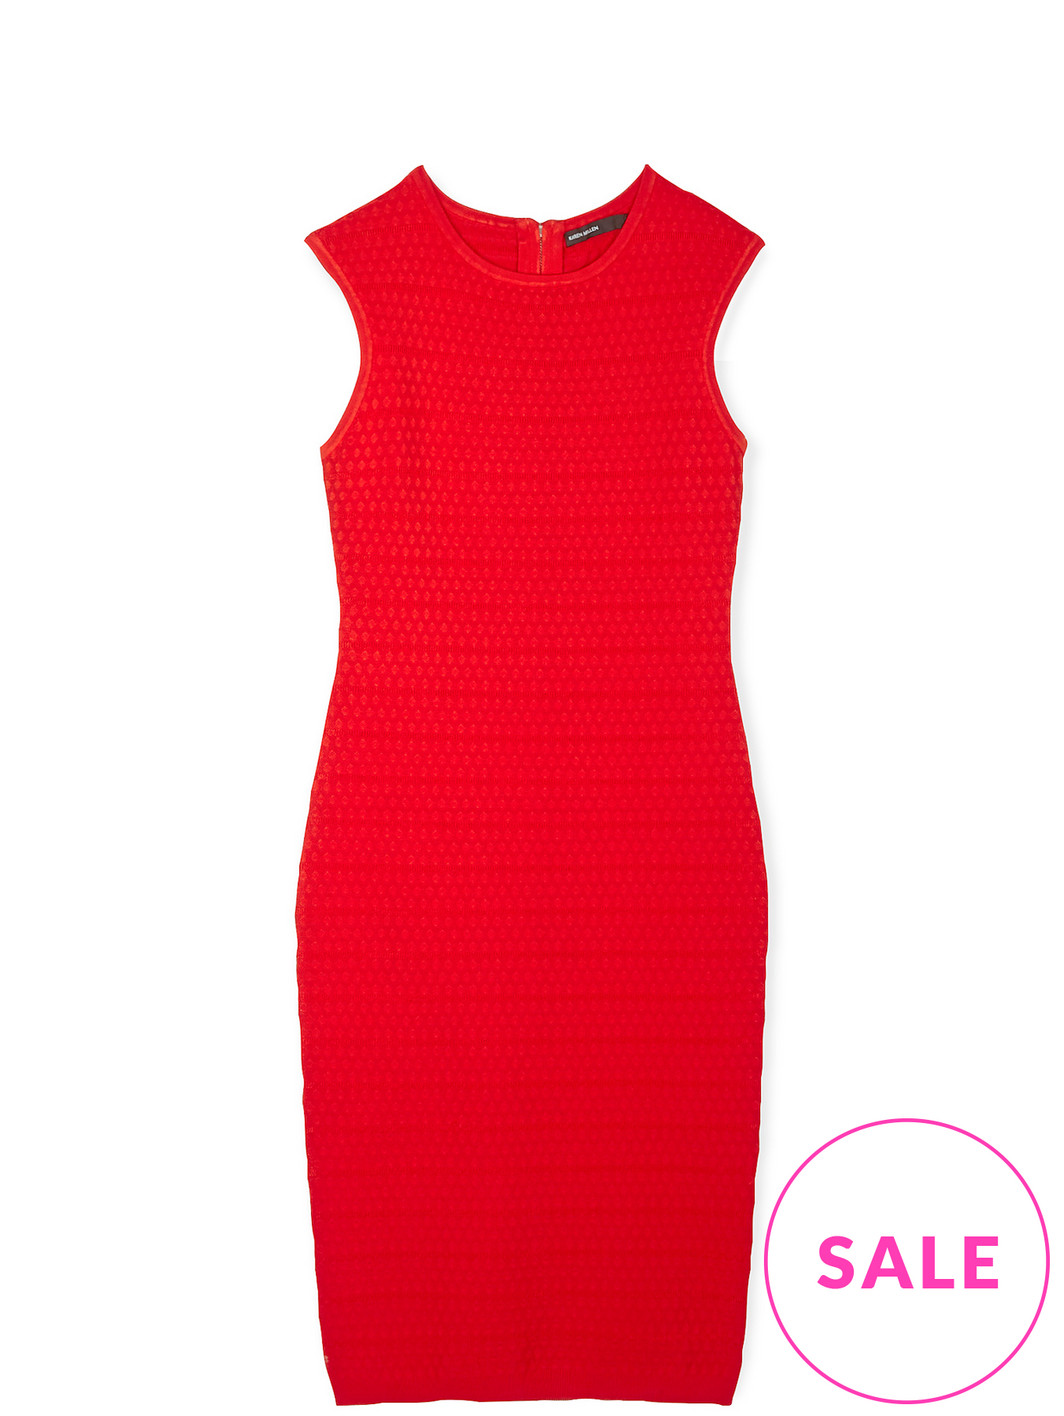 Karen Millen bandage dress.jpeg